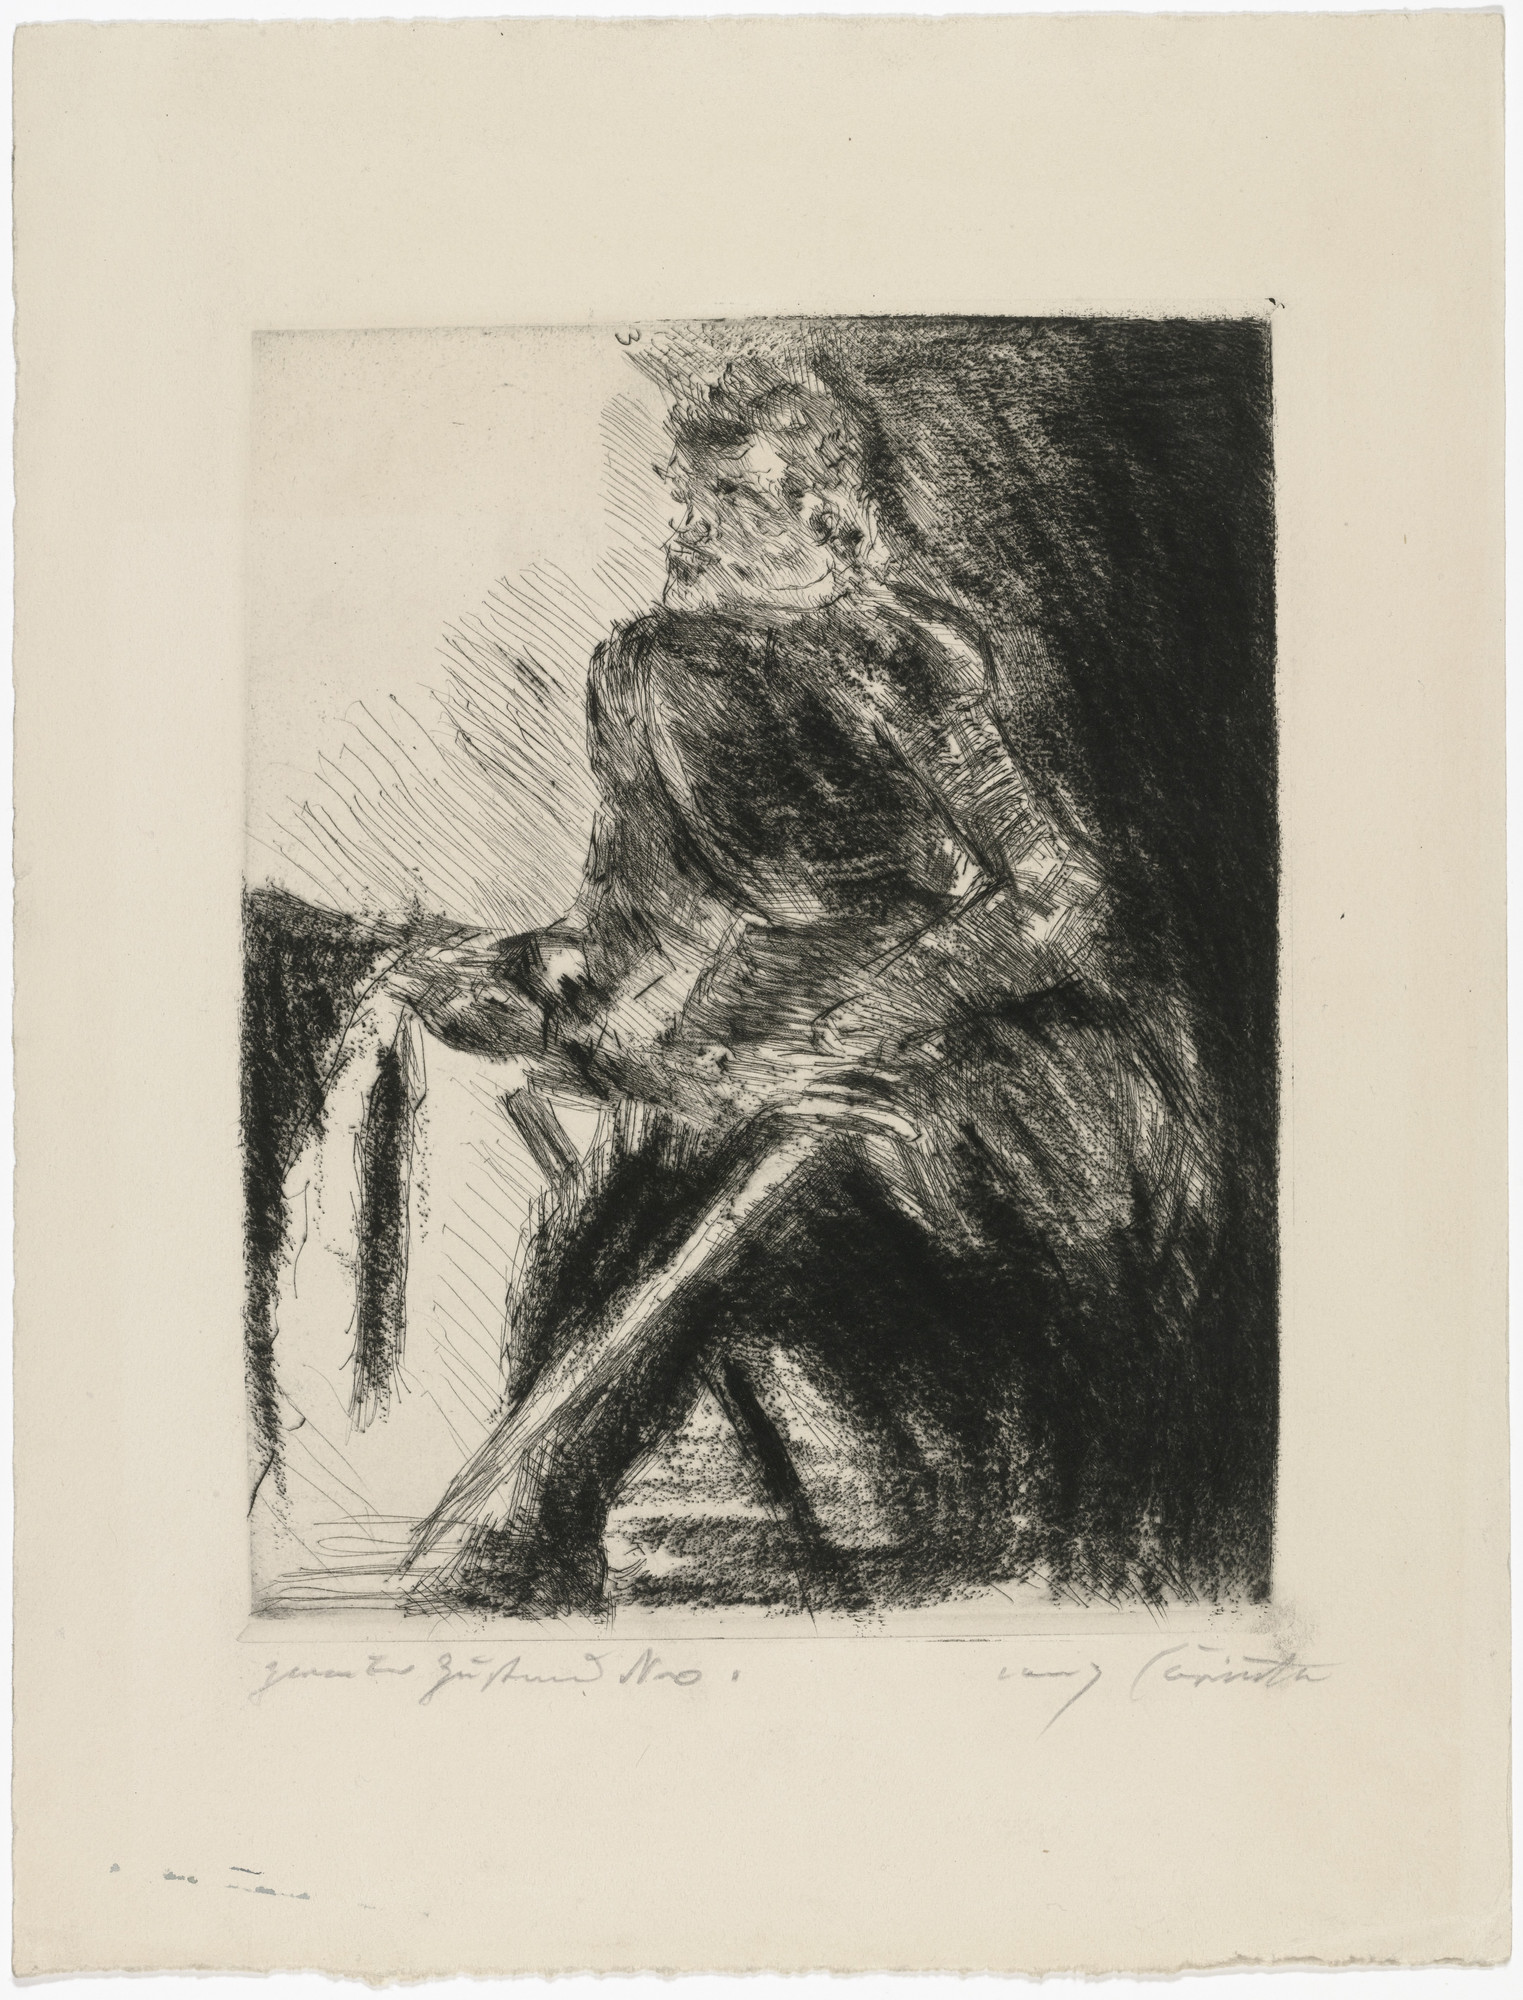 Lovis Corinth. Rudolf Rittner as Florian Geyer (Rudolf Rittner als Florian Geyer) for the portfolio Compositions (Kompositionen). (1921-22)